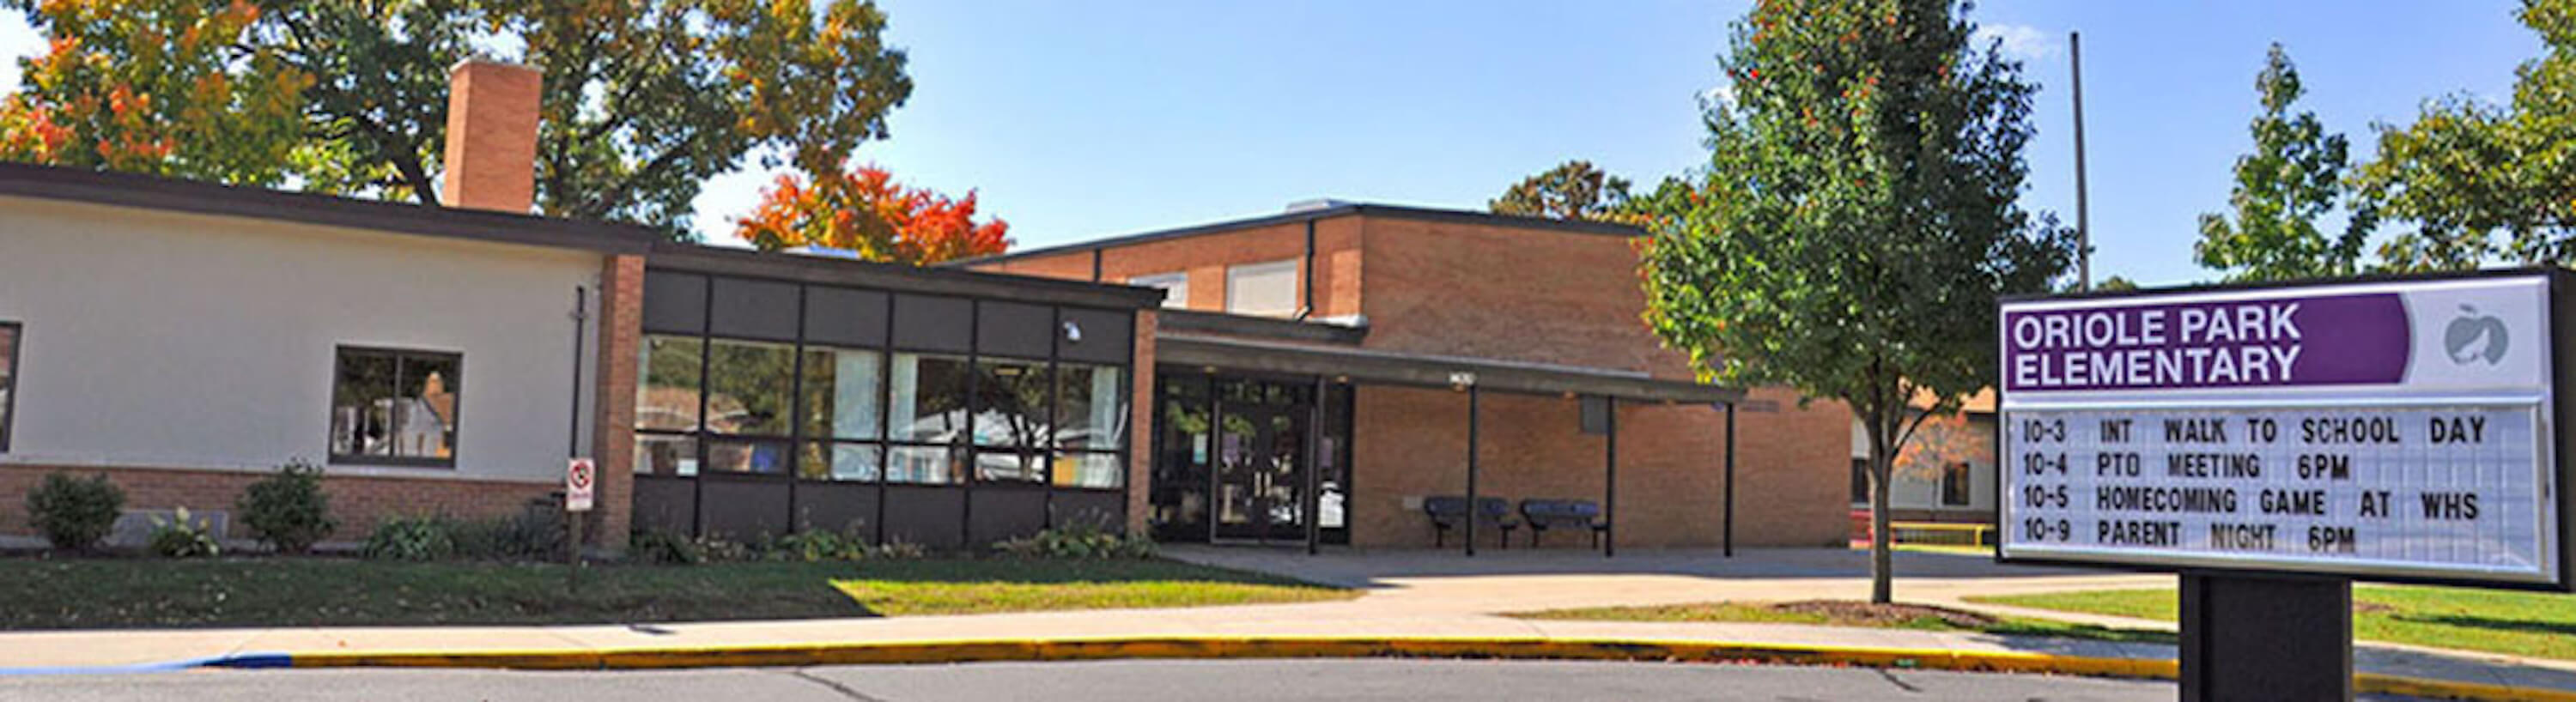 Photo of Oriole Park Elementary